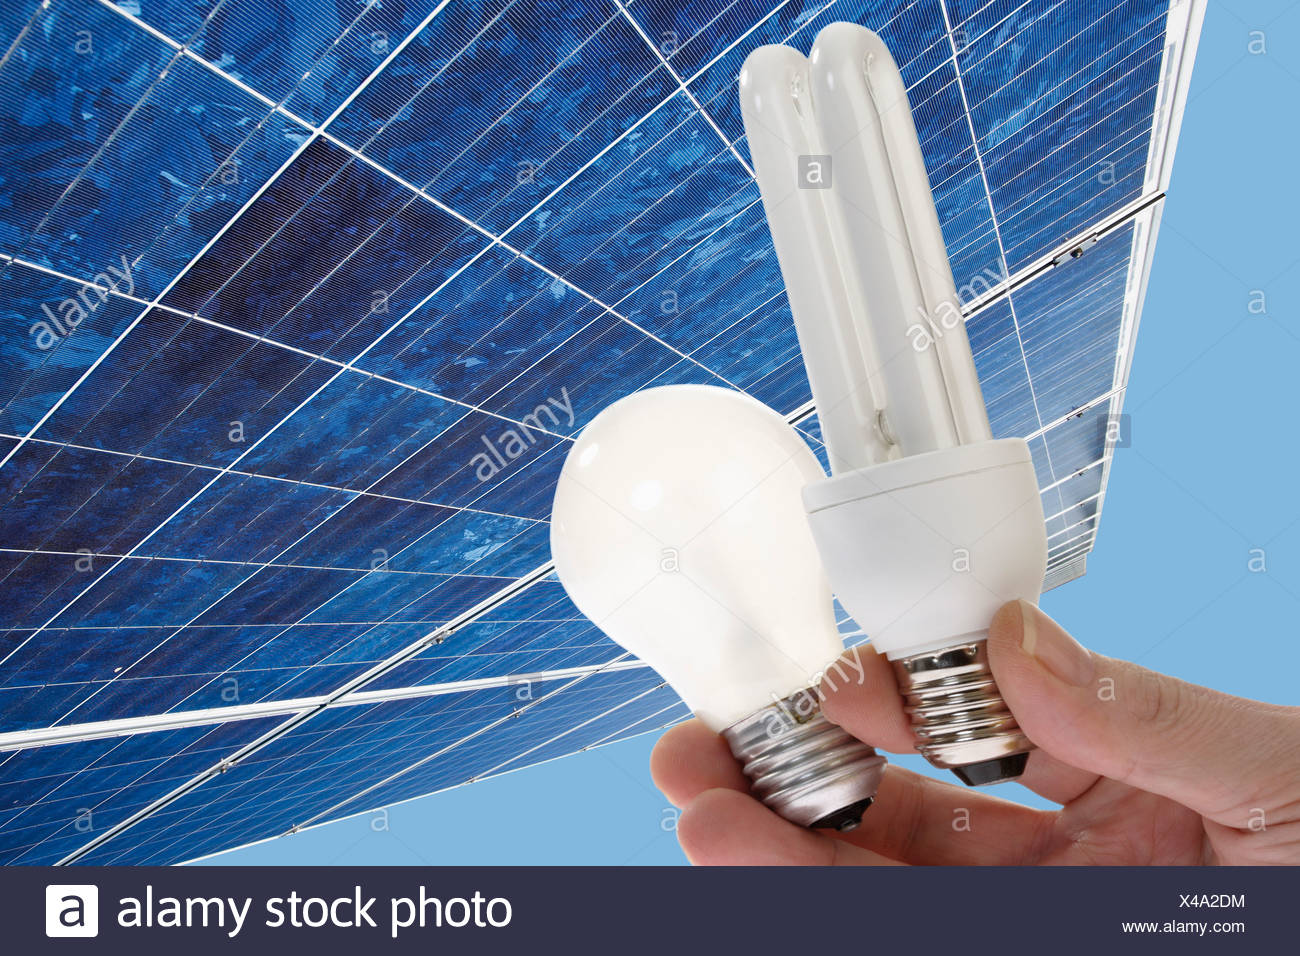 Human hand holding energy saving light, bulb against  solar panel, close up. - Stock Image